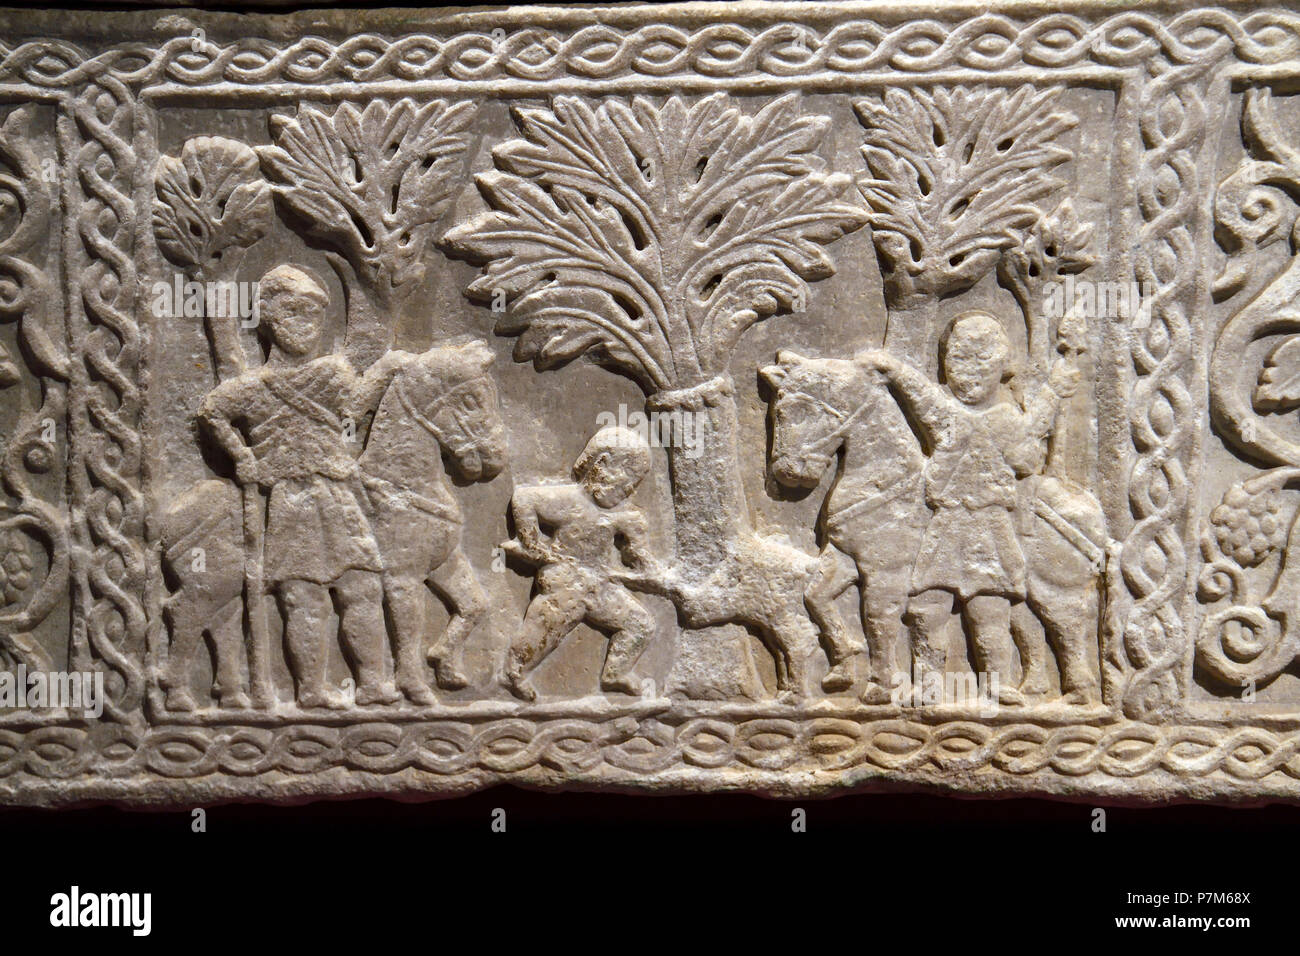 France, Haute Garonne, Toulouse, St. Raymond Museum, Carved sarcophagus - Stock Image